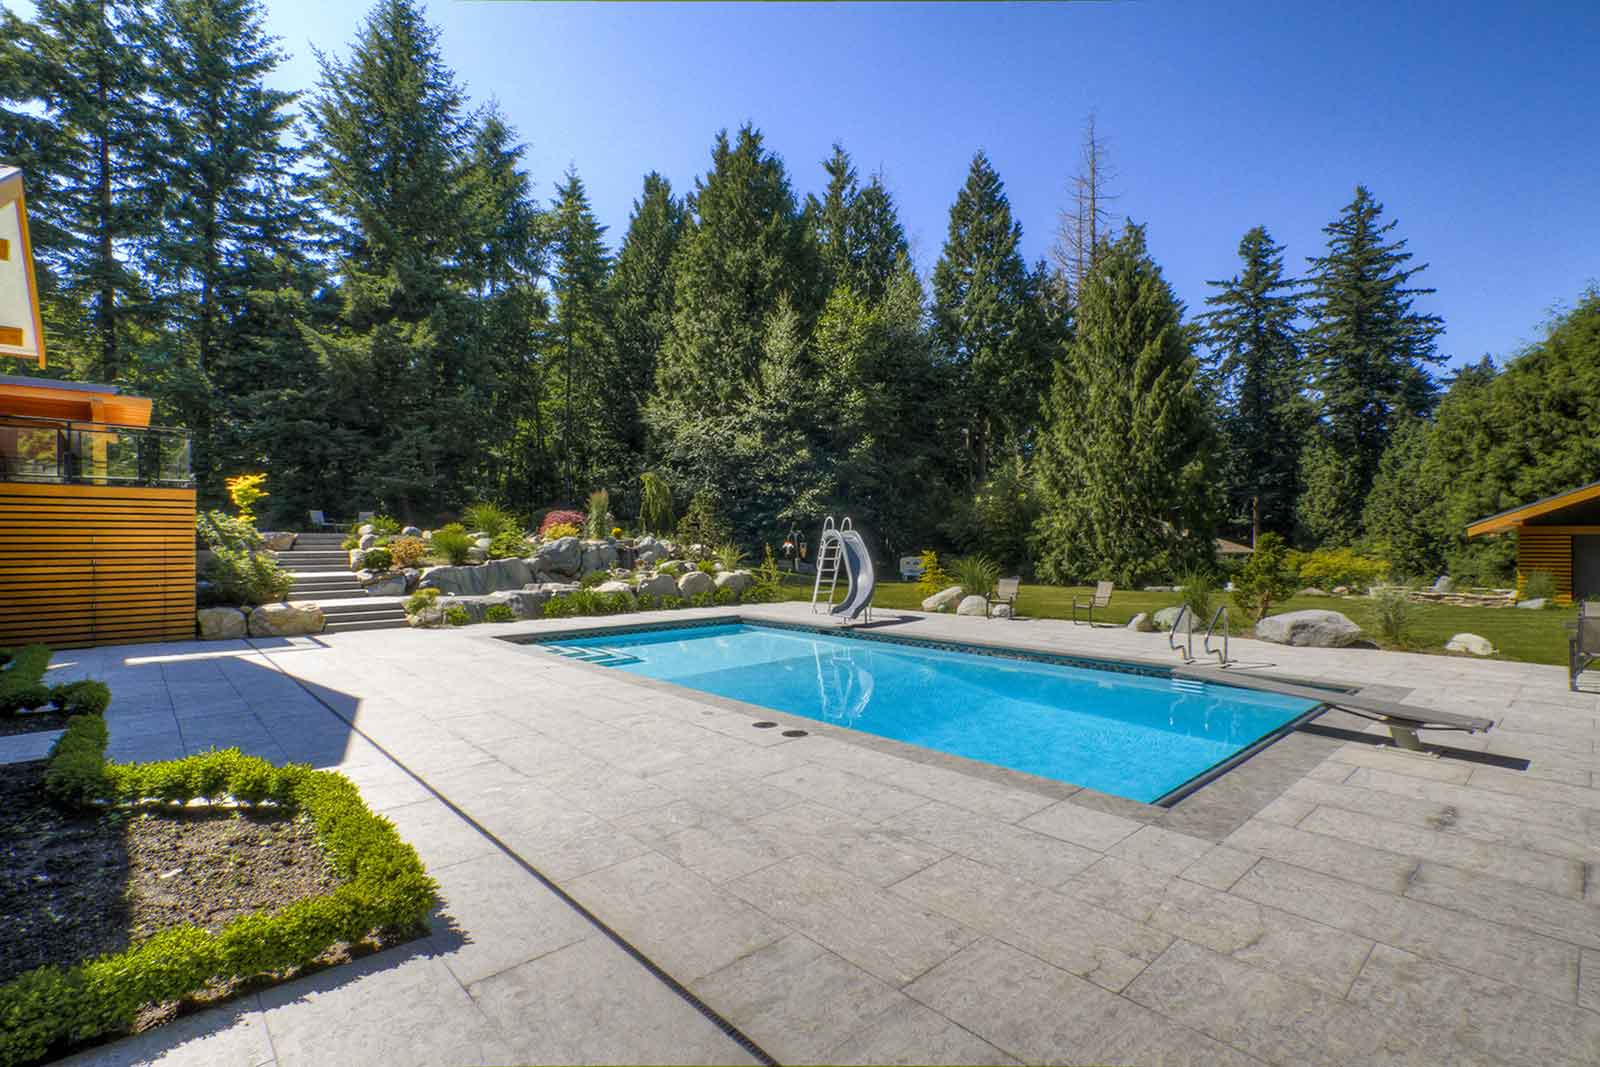 Pool with concrete paved deck